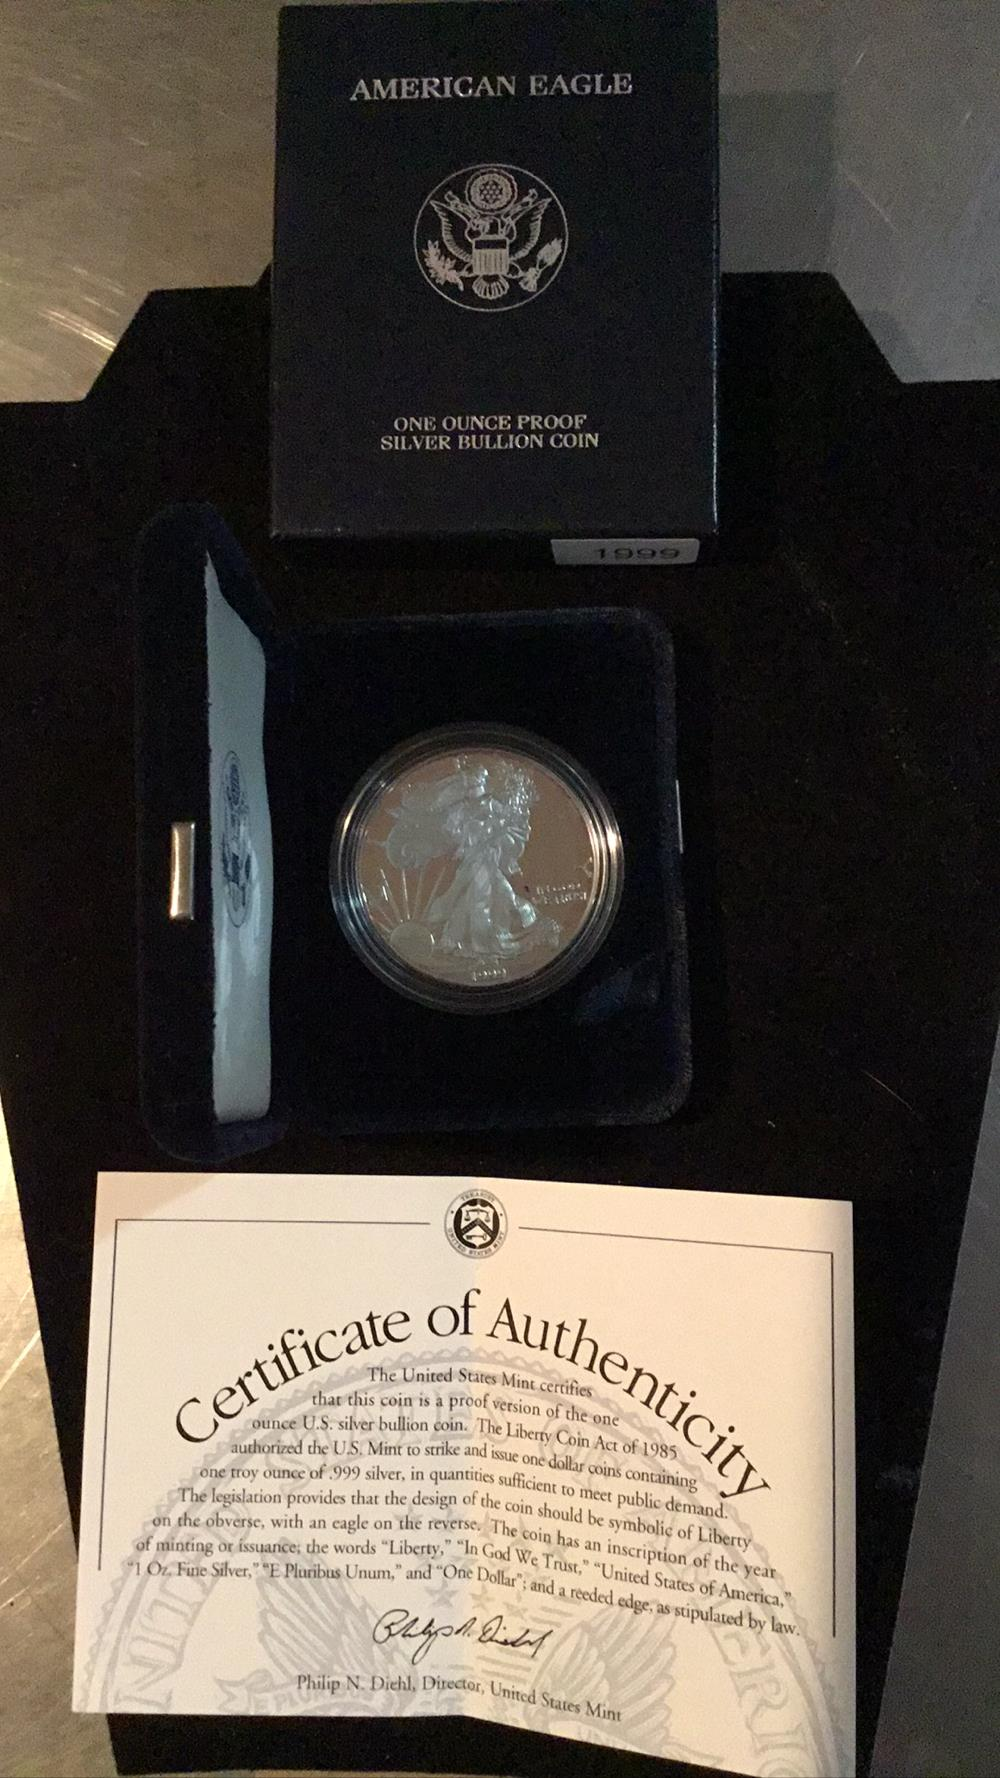 American Eagle one else proof silver bullion coin